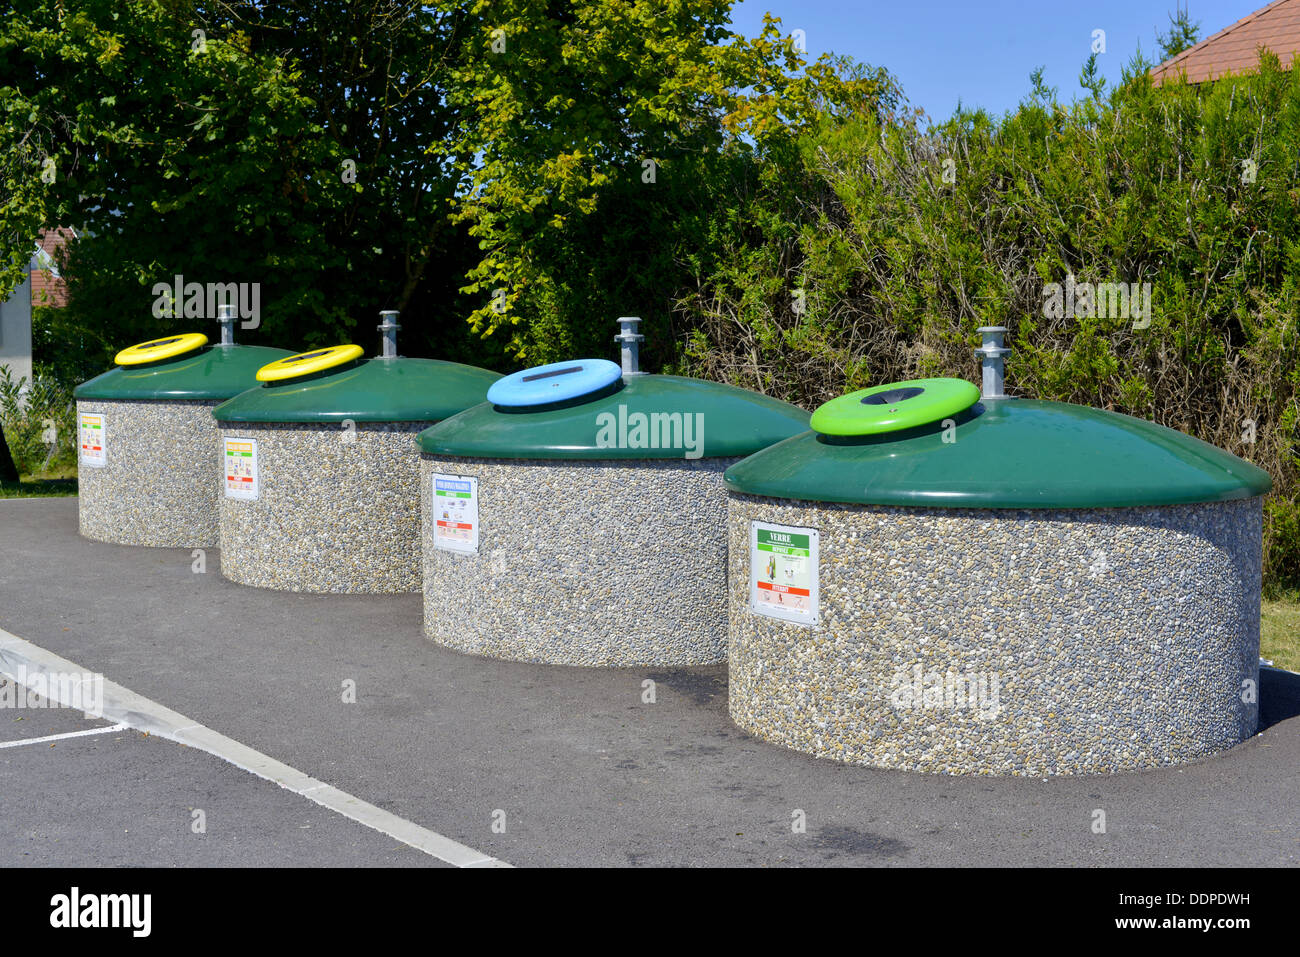 four contenairs for sorting waste - Stock Image